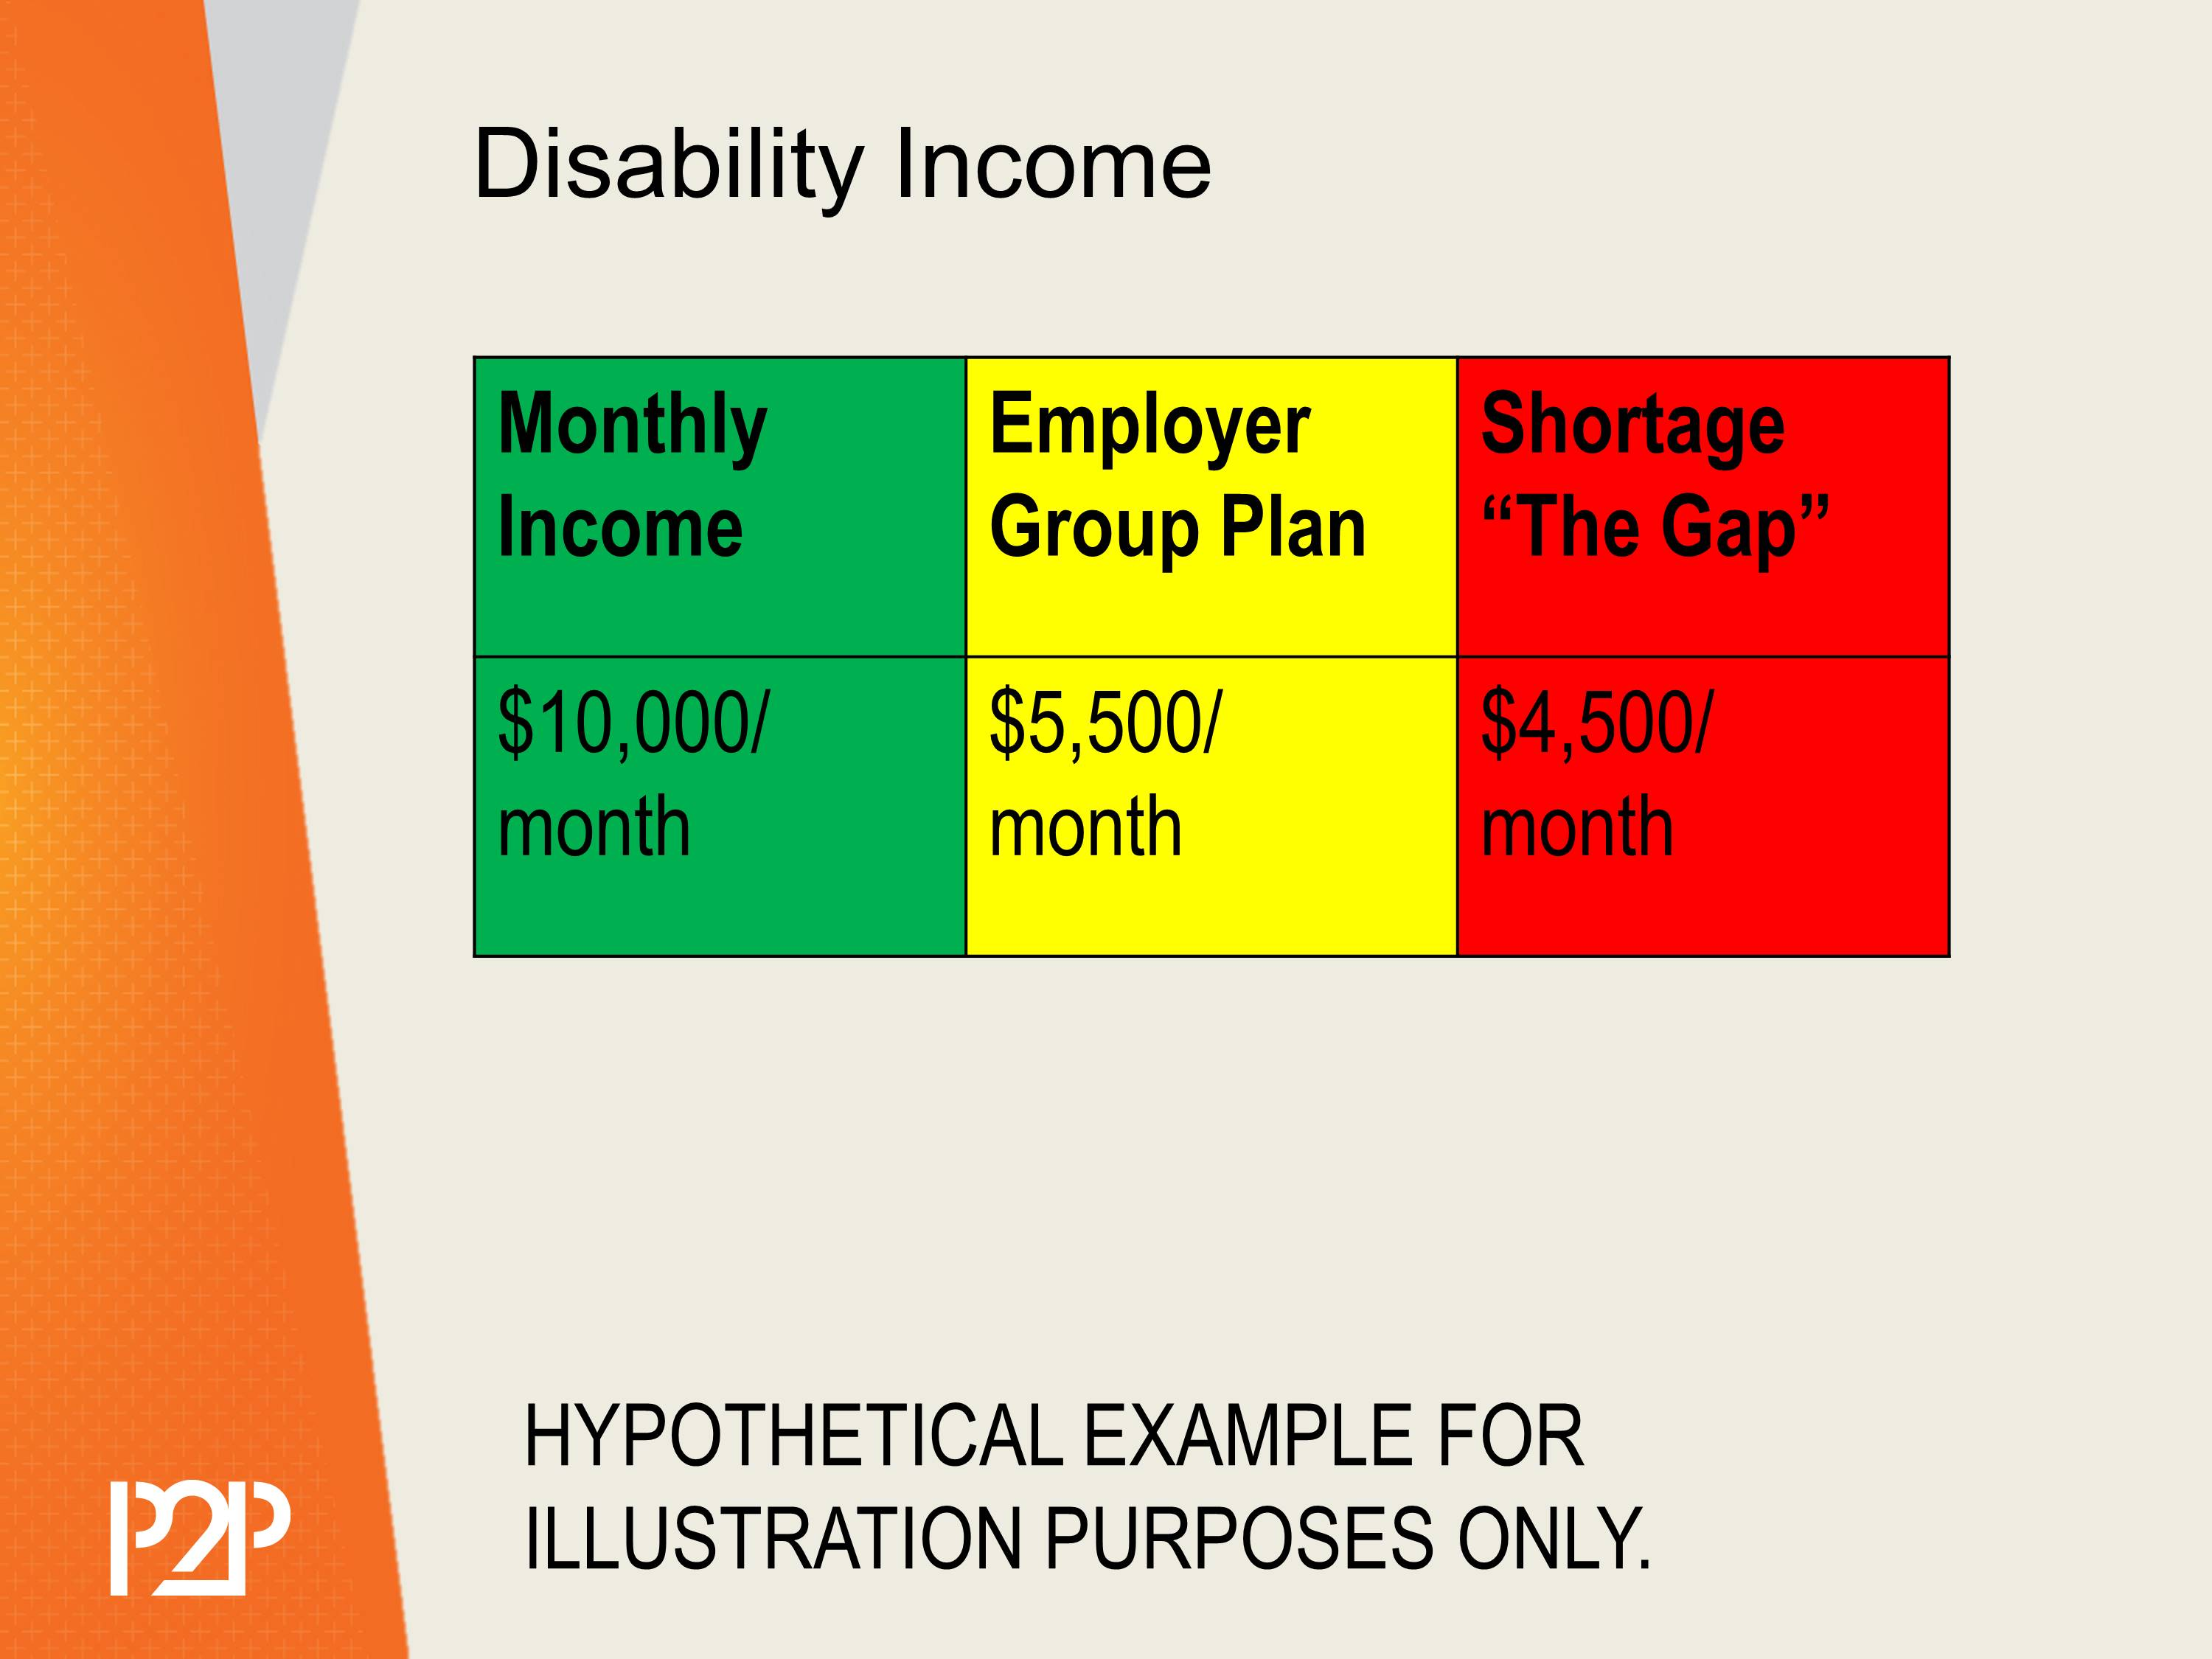 a chart showing current income vs. benefits vs. shortfall of disability income.